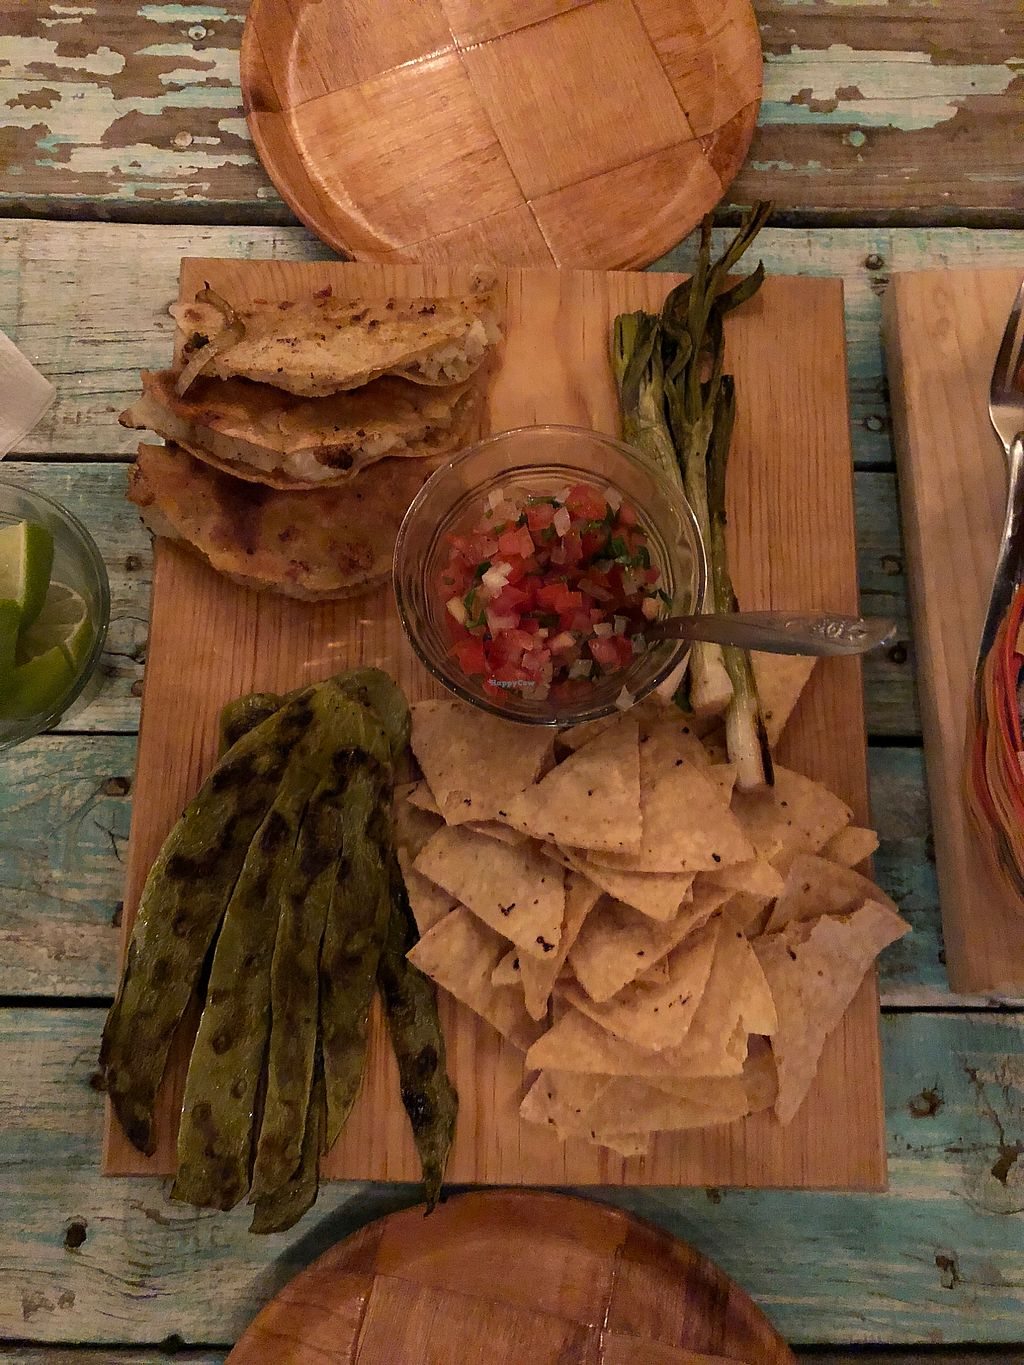 """Photo of La Rana Vegana  by <a href=""""/members/profile/RyanPamplin"""">RyanPamplin</a> <br/>Get the quesadillas! Your life will change forever <br/> January 21, 2018  - <a href='/contact/abuse/image/83802/349493'>Report</a>"""